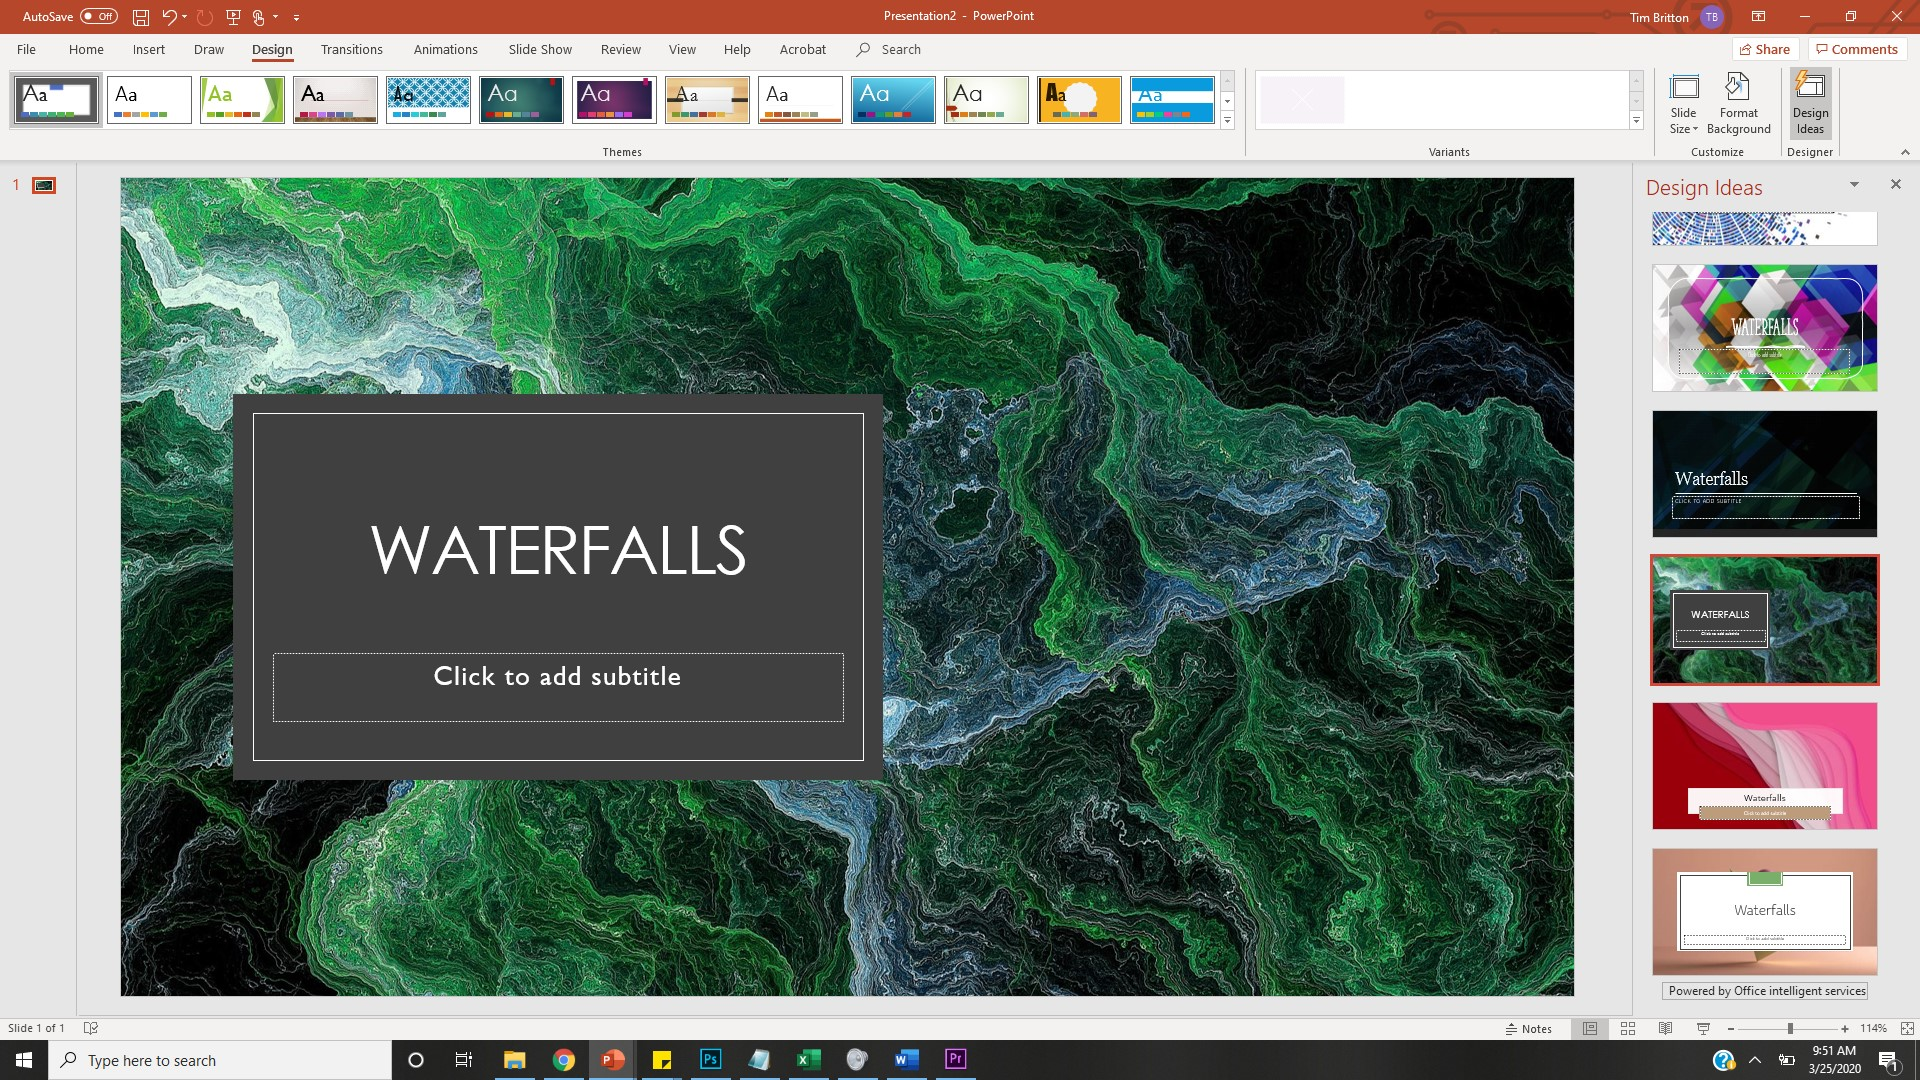 PowerPoint Presentation with Waterfalls as title and topography image background